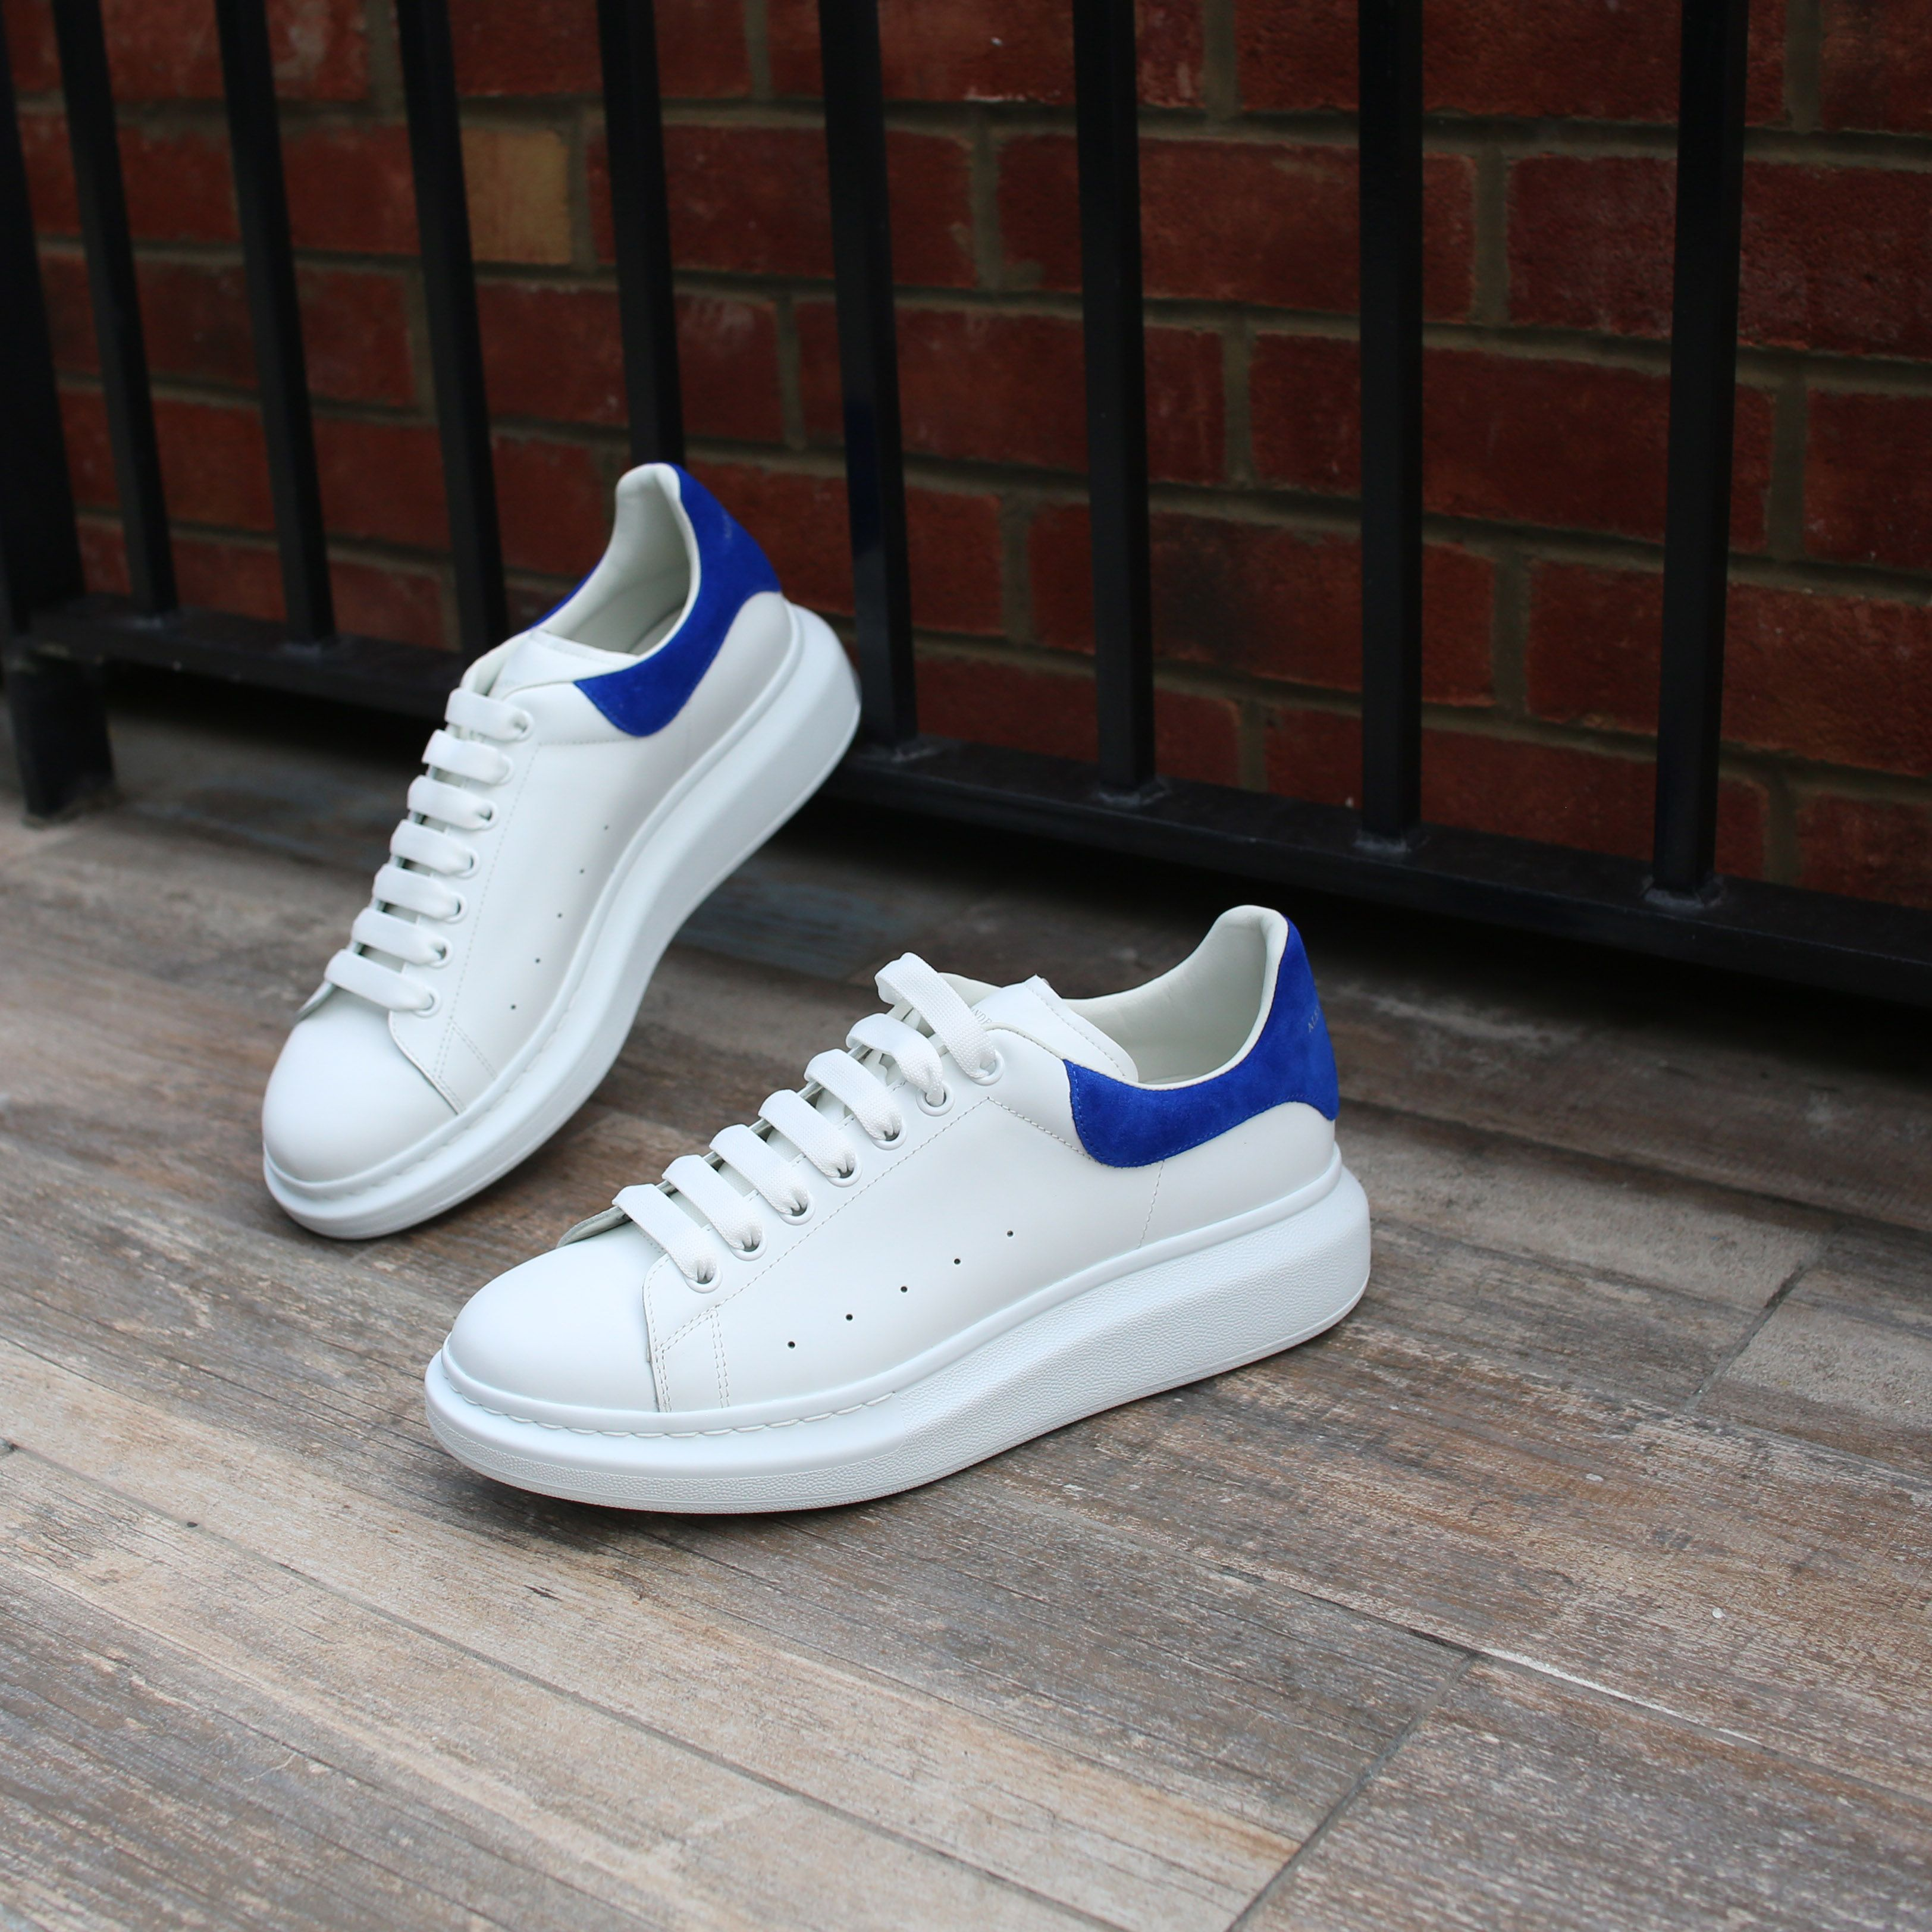 090d11593c17 Alexander McQueen Larry white leather trainers with a royal blue suede heel  panel. An essential pair of shoes for every wardrobe.